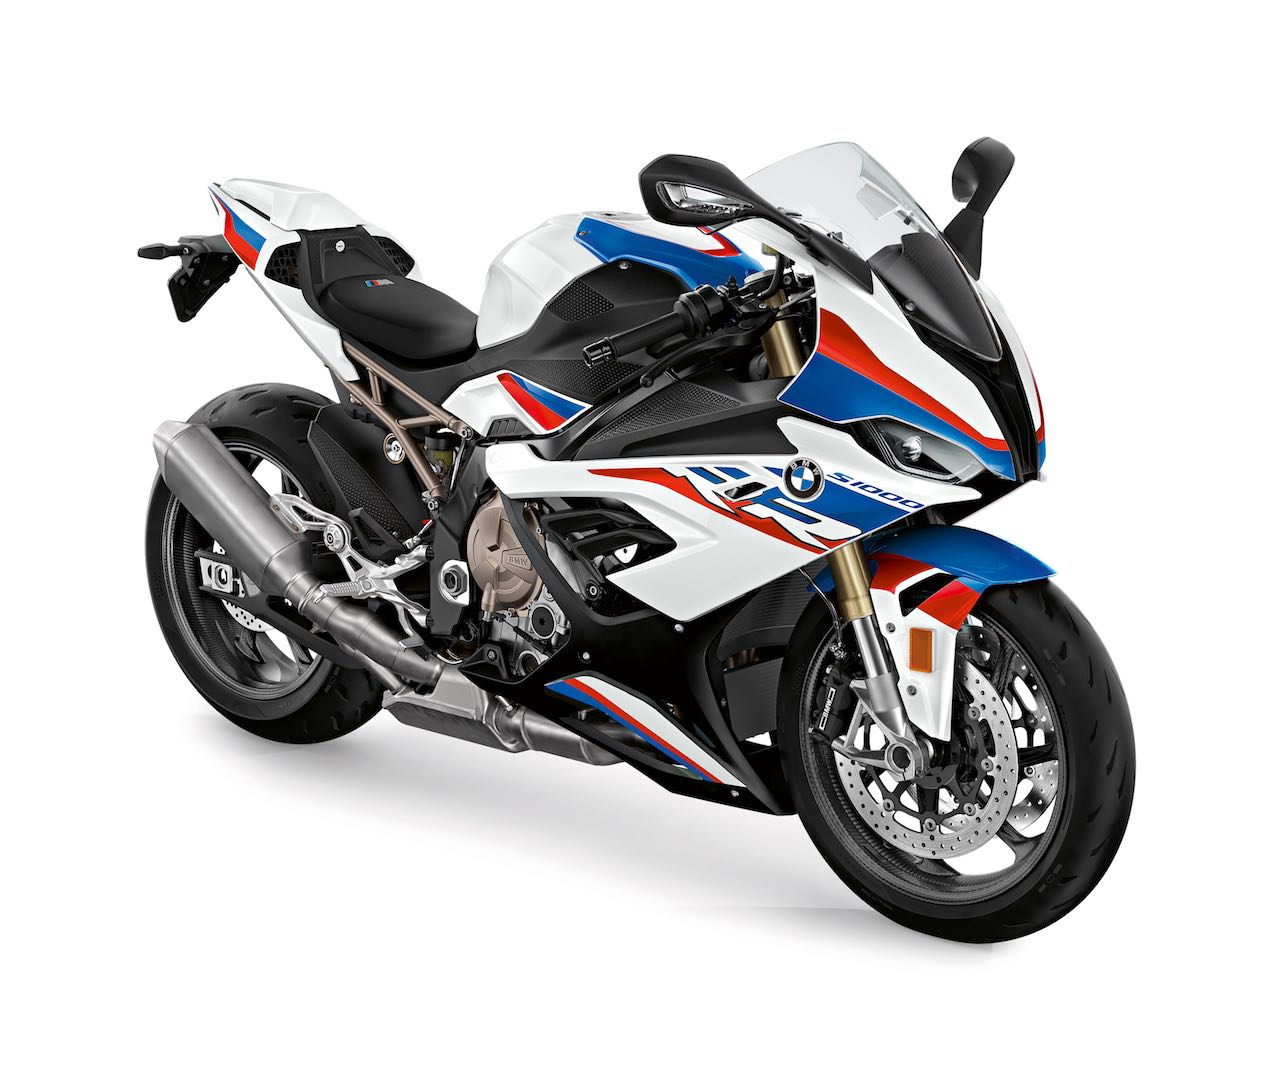 2019 BMW S 1000 RR First Look At Major Updates (12 Fast